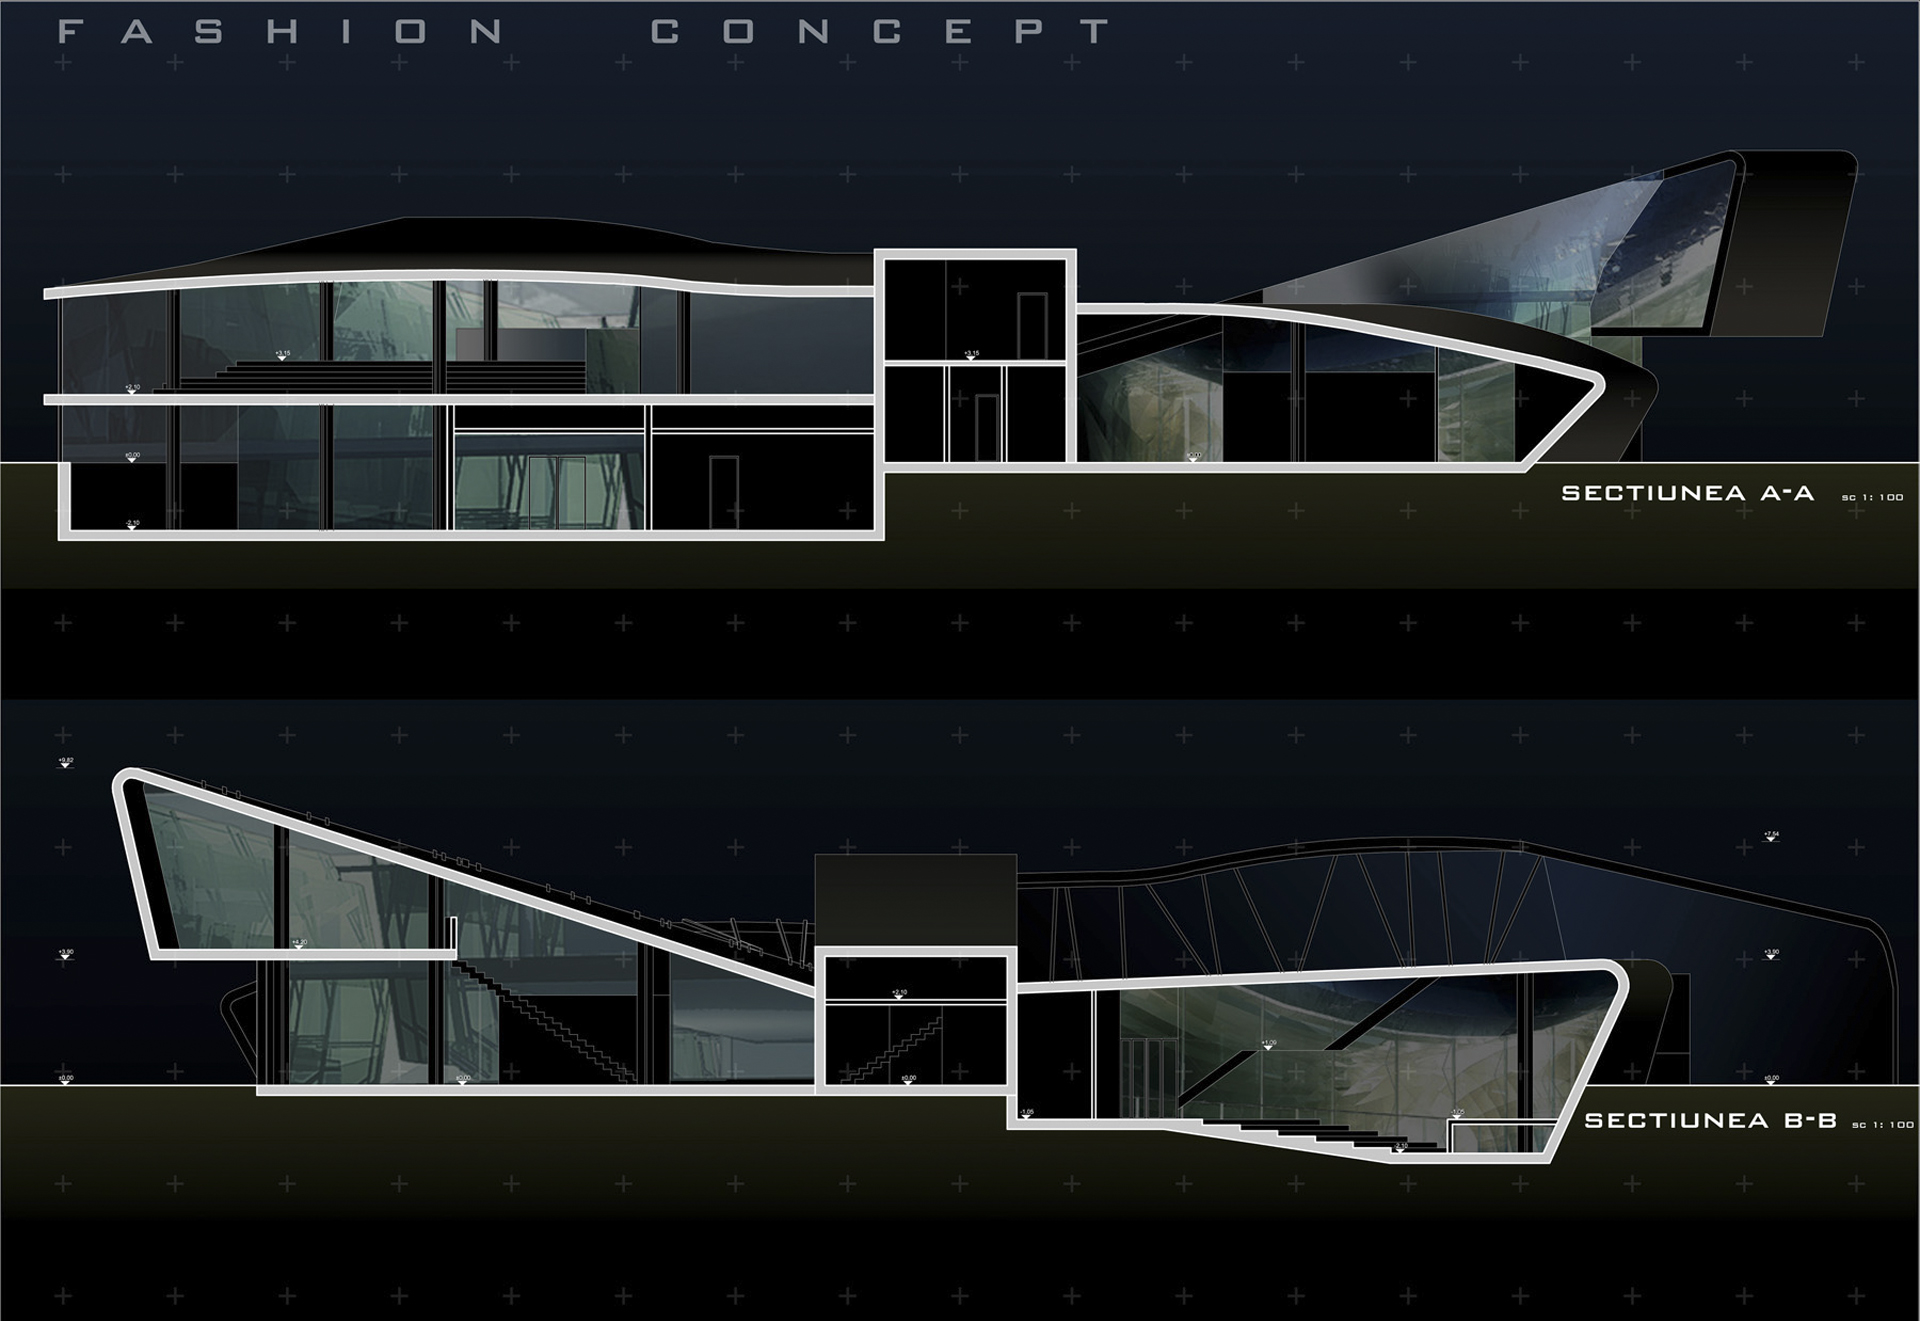 06-inspired-fashion-architecture-concept